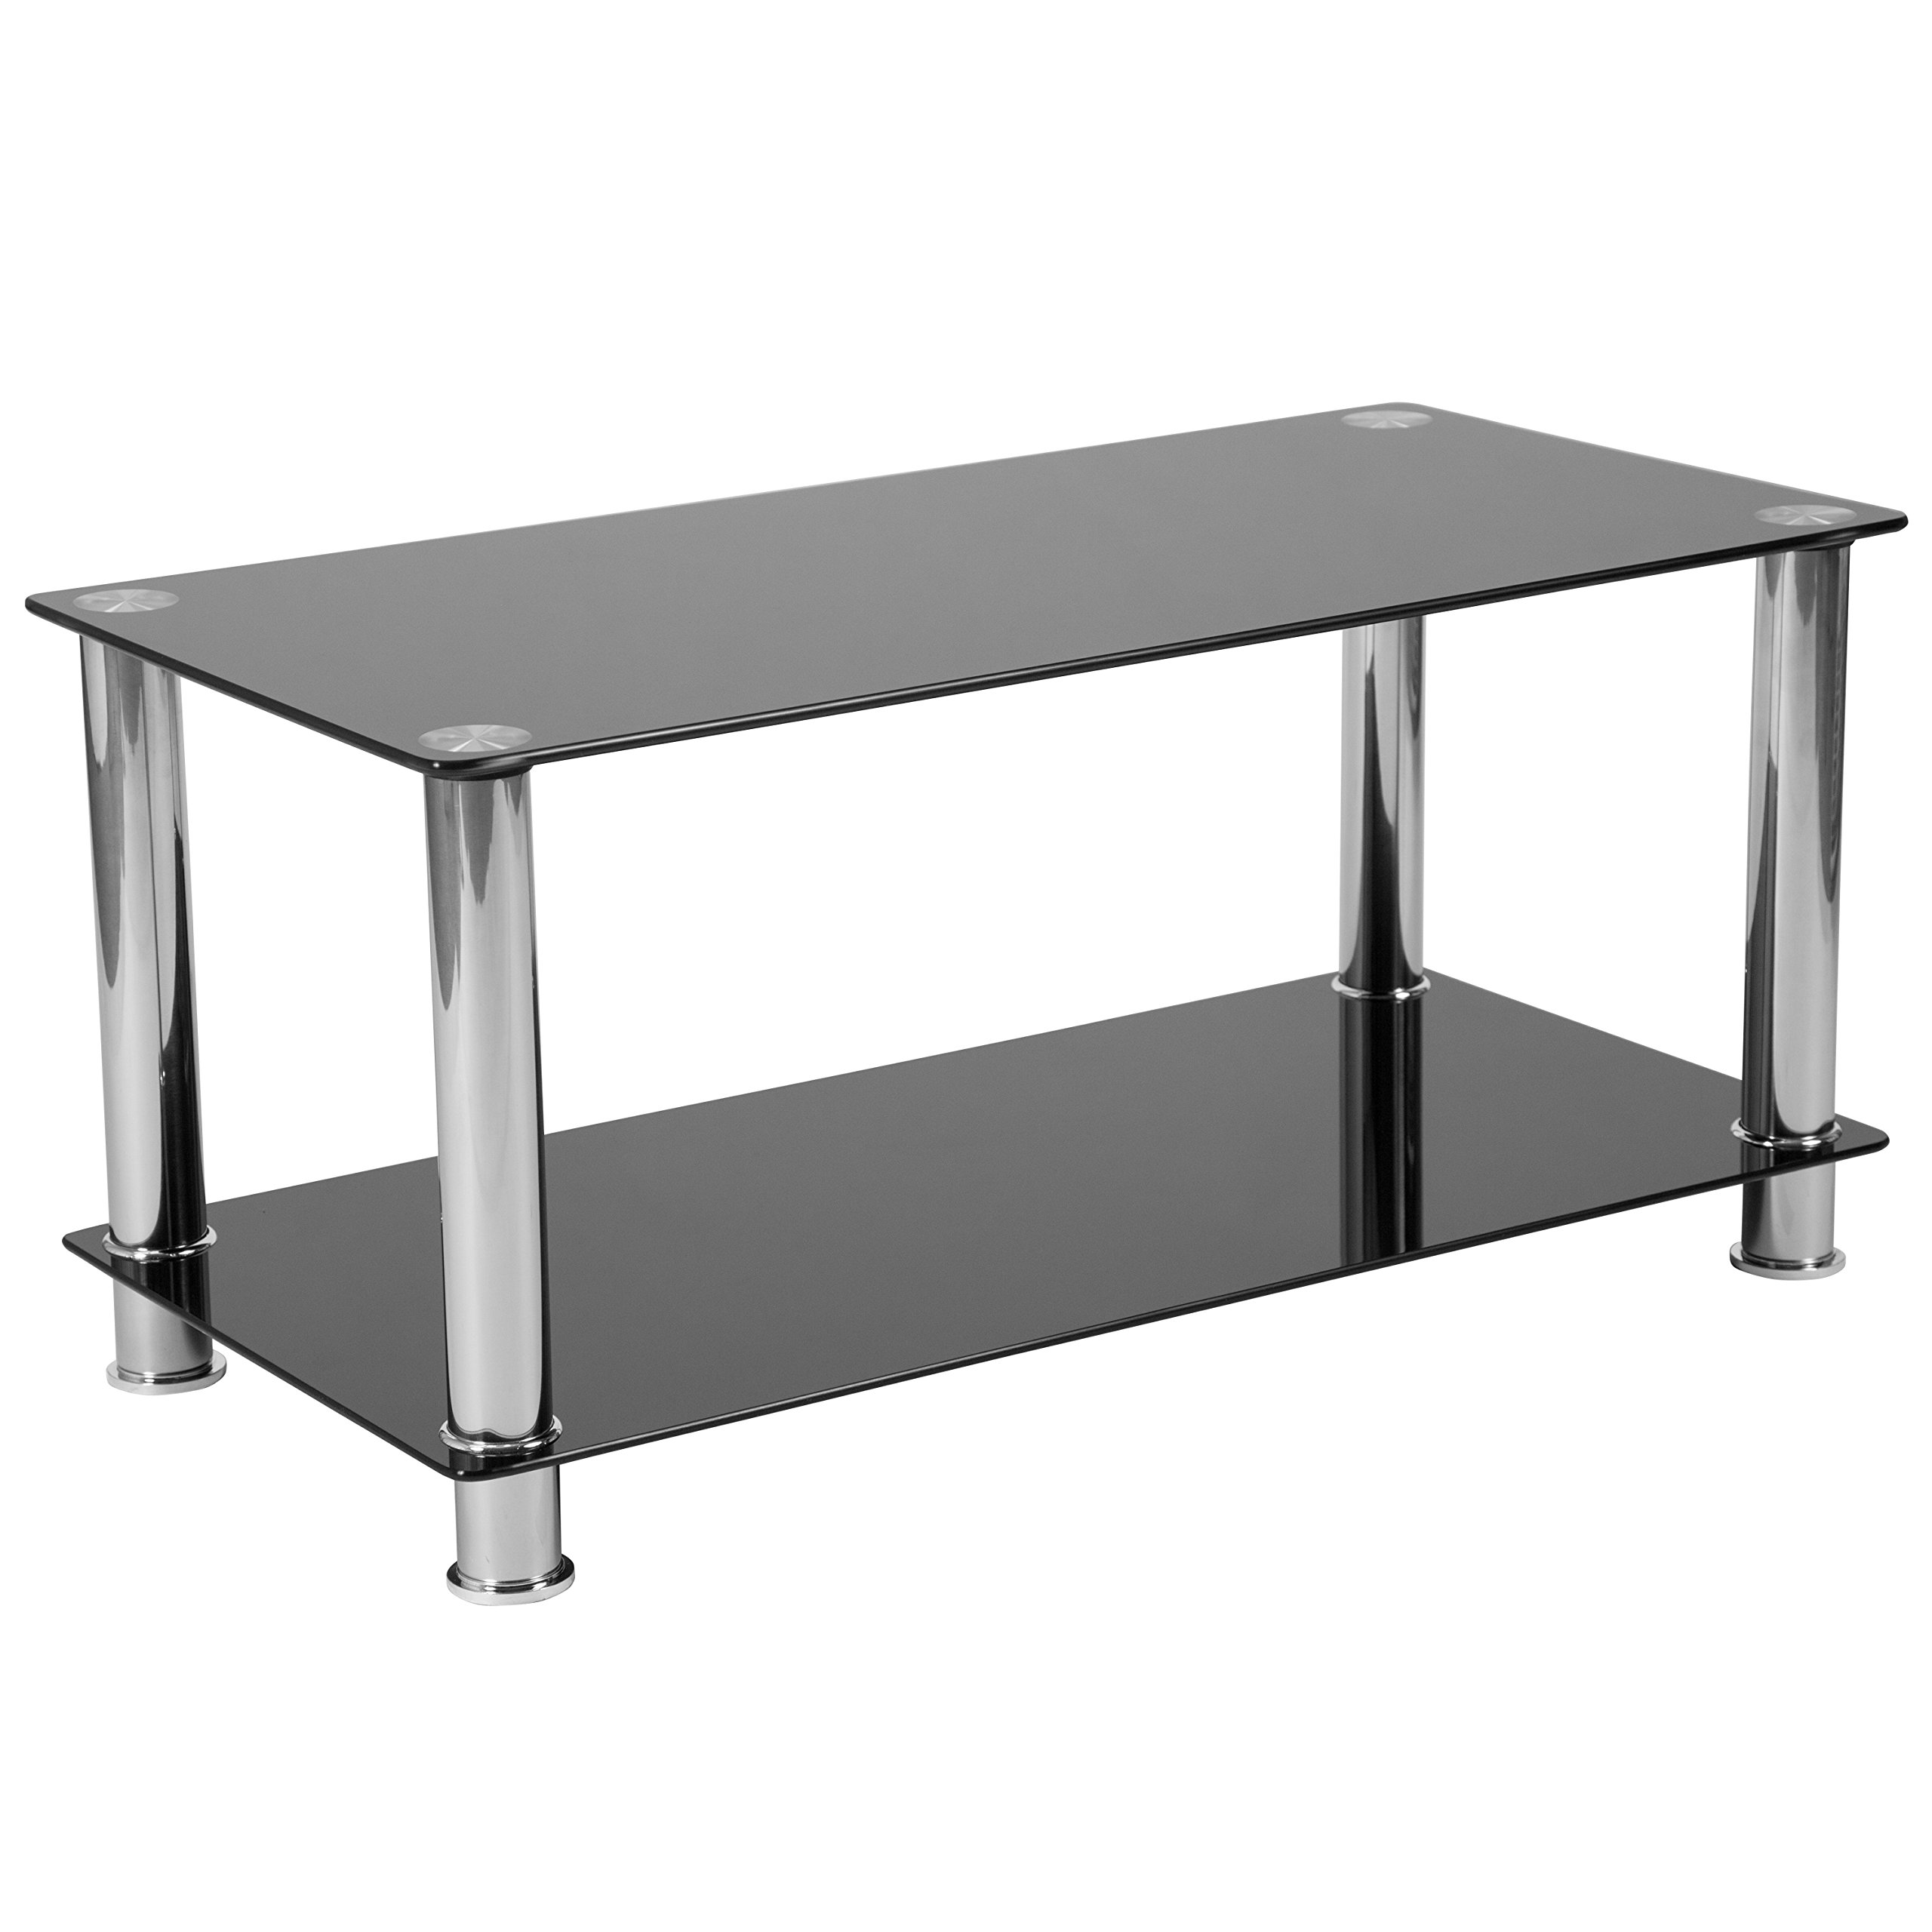 Flash Furniture Riverside Collection Black Glass Coffee Table with Shelves and Stainless Steel Frame - by Flash Furniture